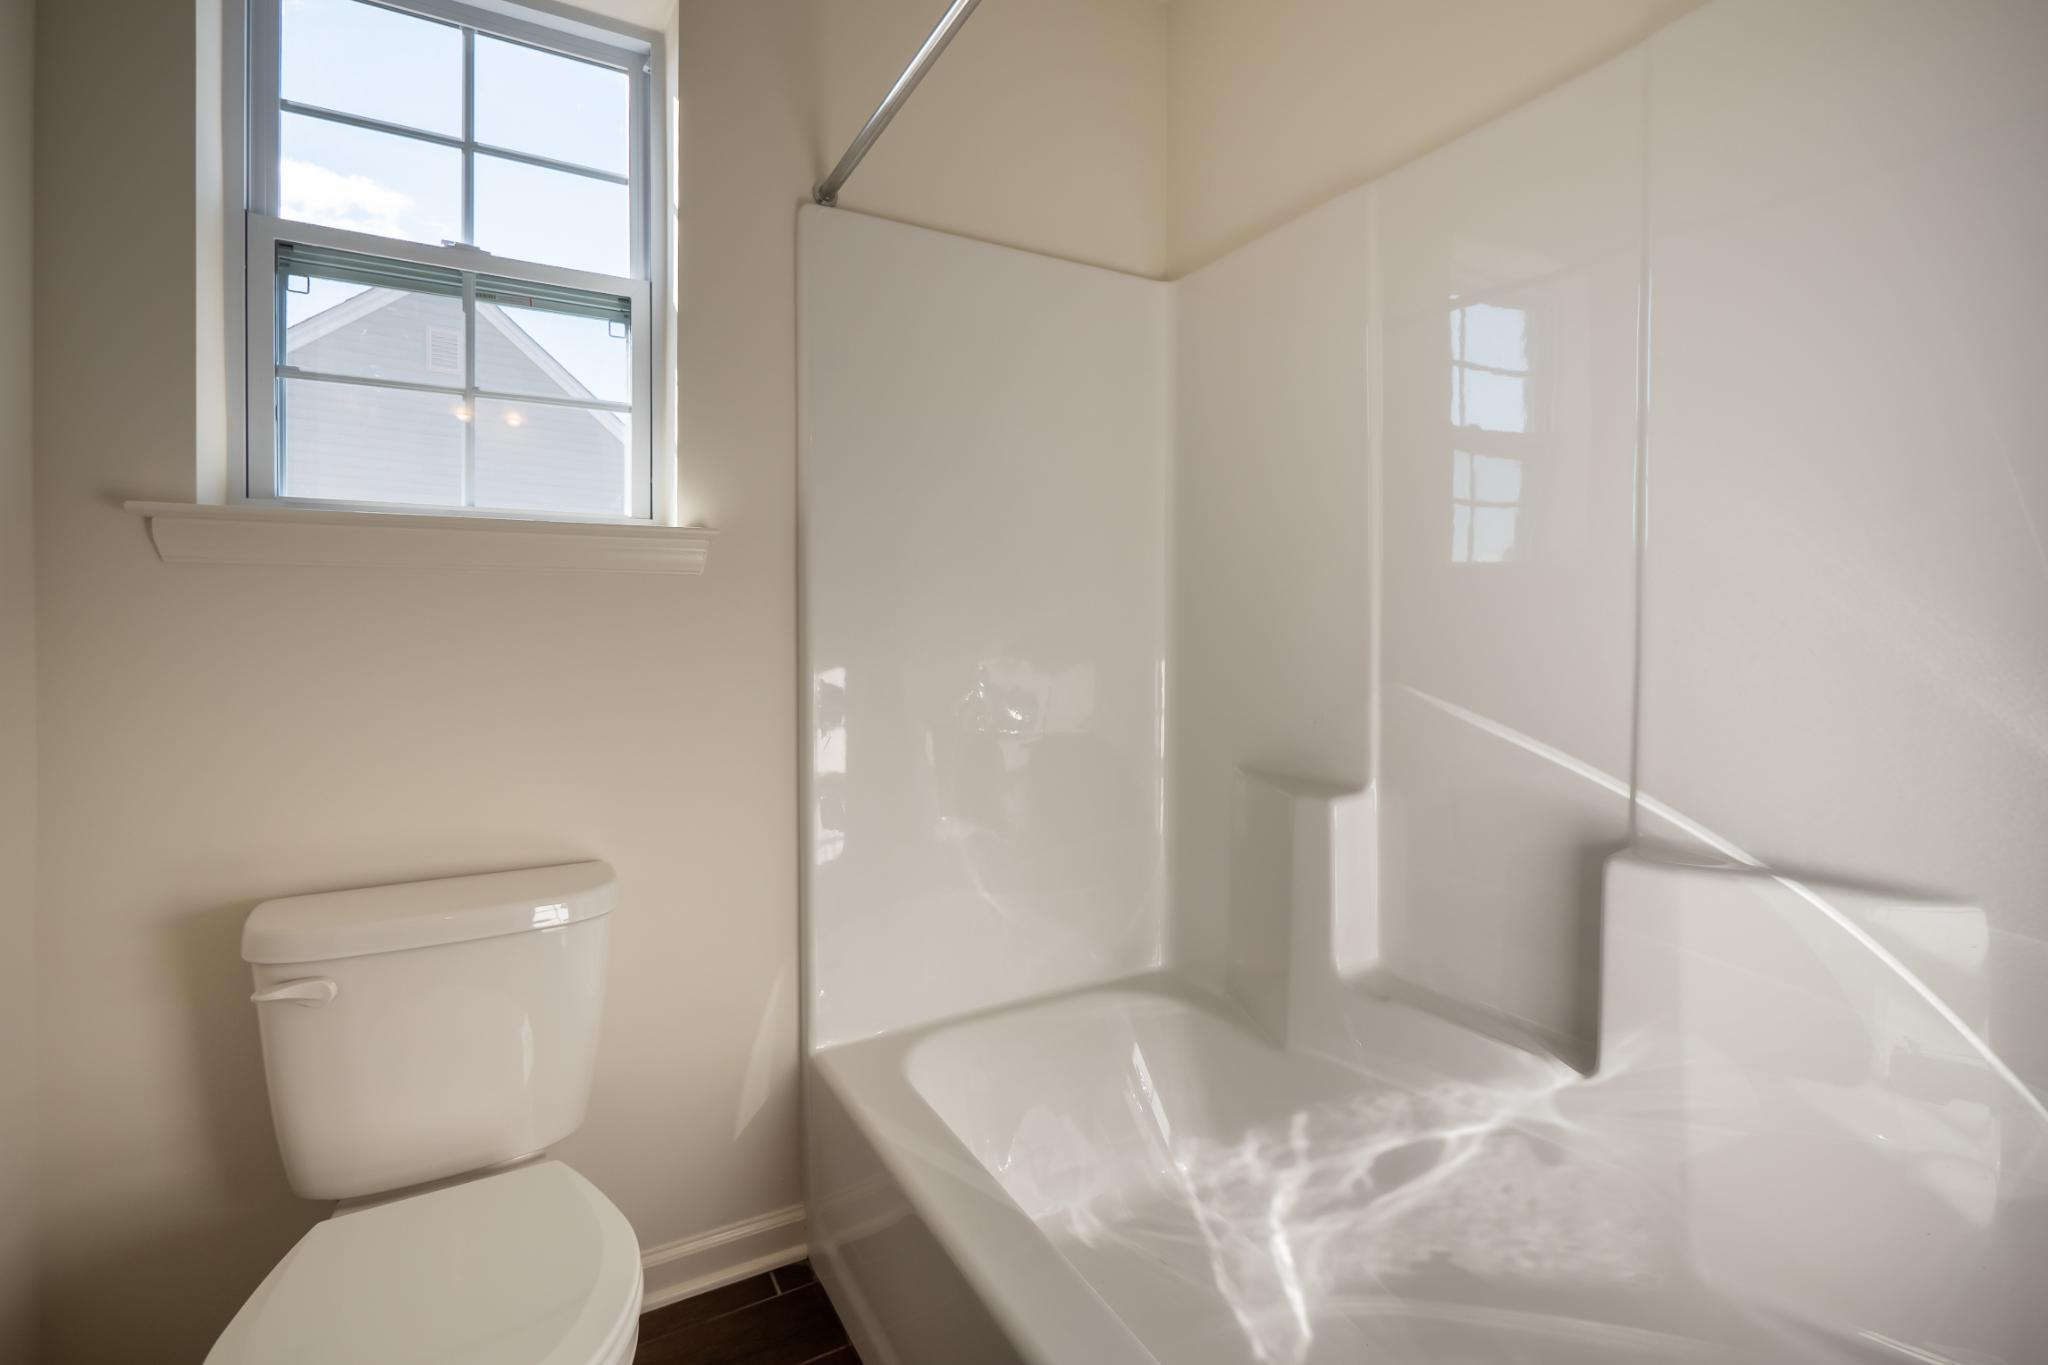 Bathroom featured in the Jereford Farmhouse By Tuskes Homes in Allentown-Bethlehem, PA